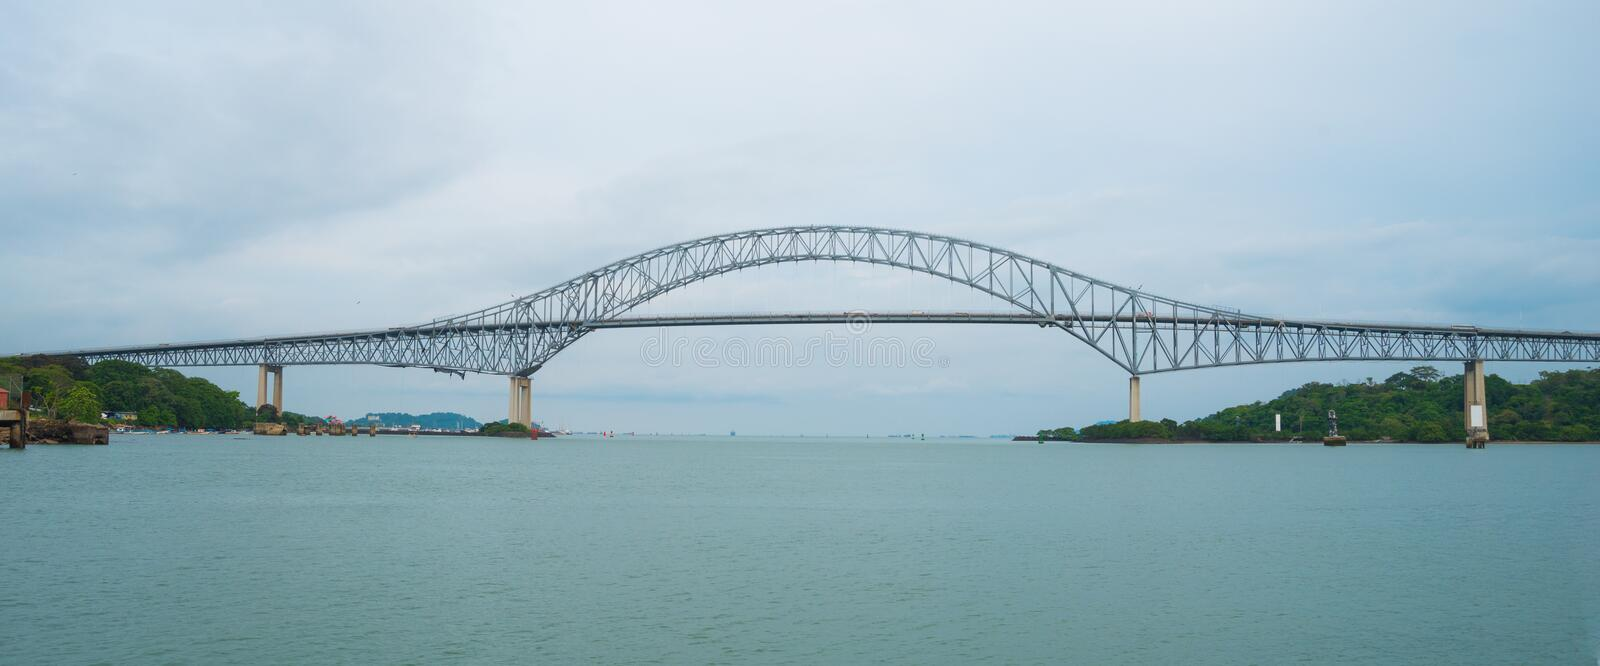 Bridge of the Americas Puente de las Americas . Bridge of the Americas Puente de las Americas. Built in 1957 and Once known as Thatcher Ferry Bridge, is a road stock images